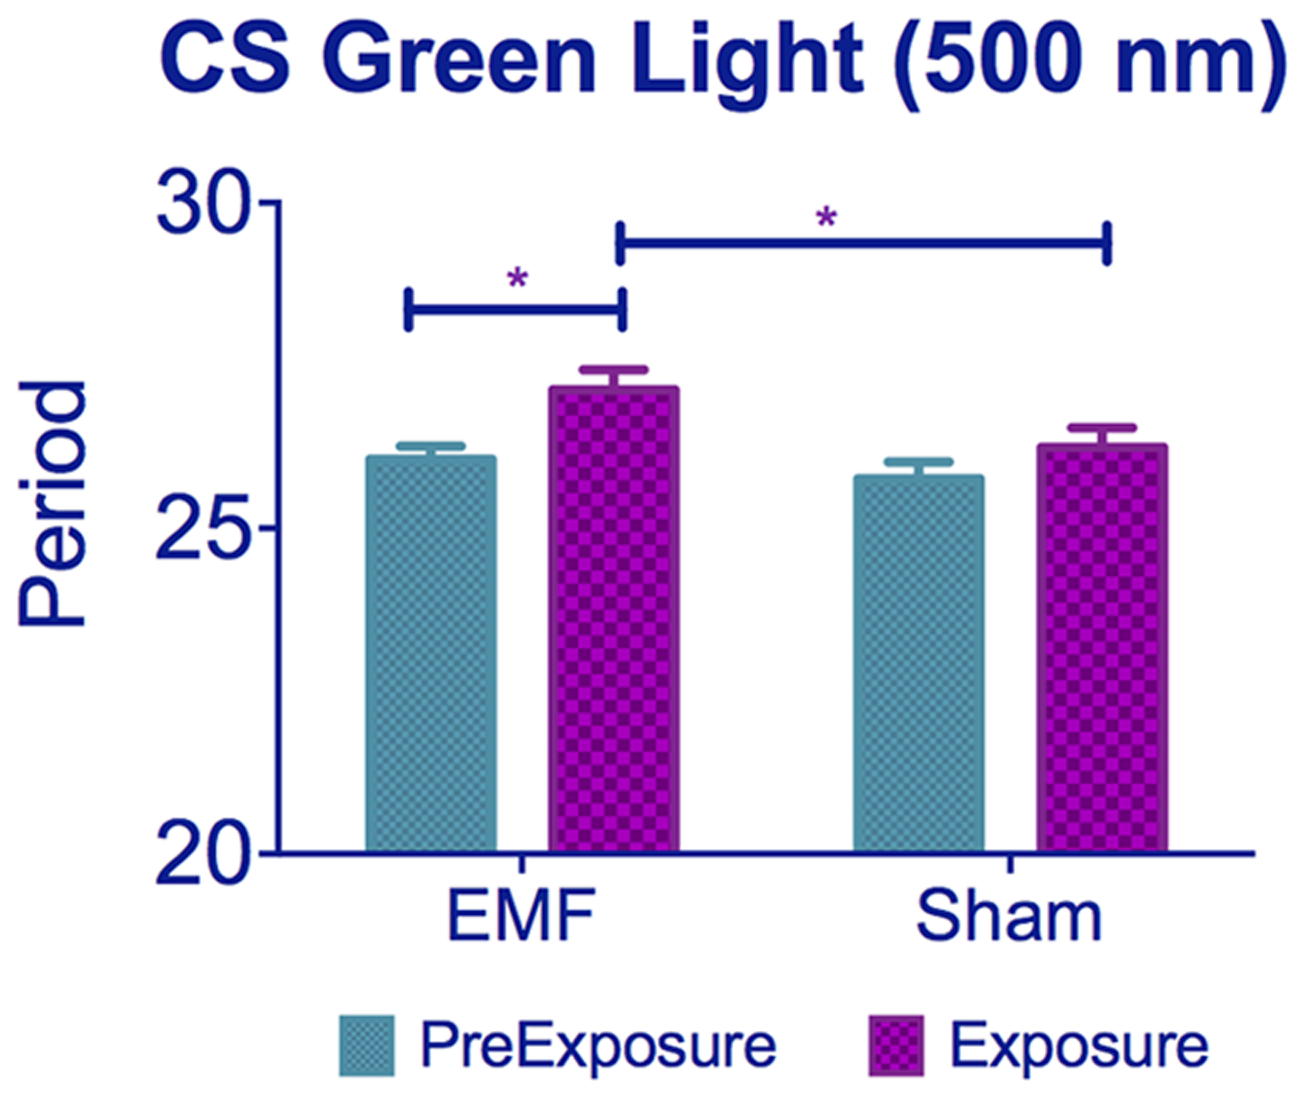 Exposure to 500 nm green light lengthens circadian period under EMF.